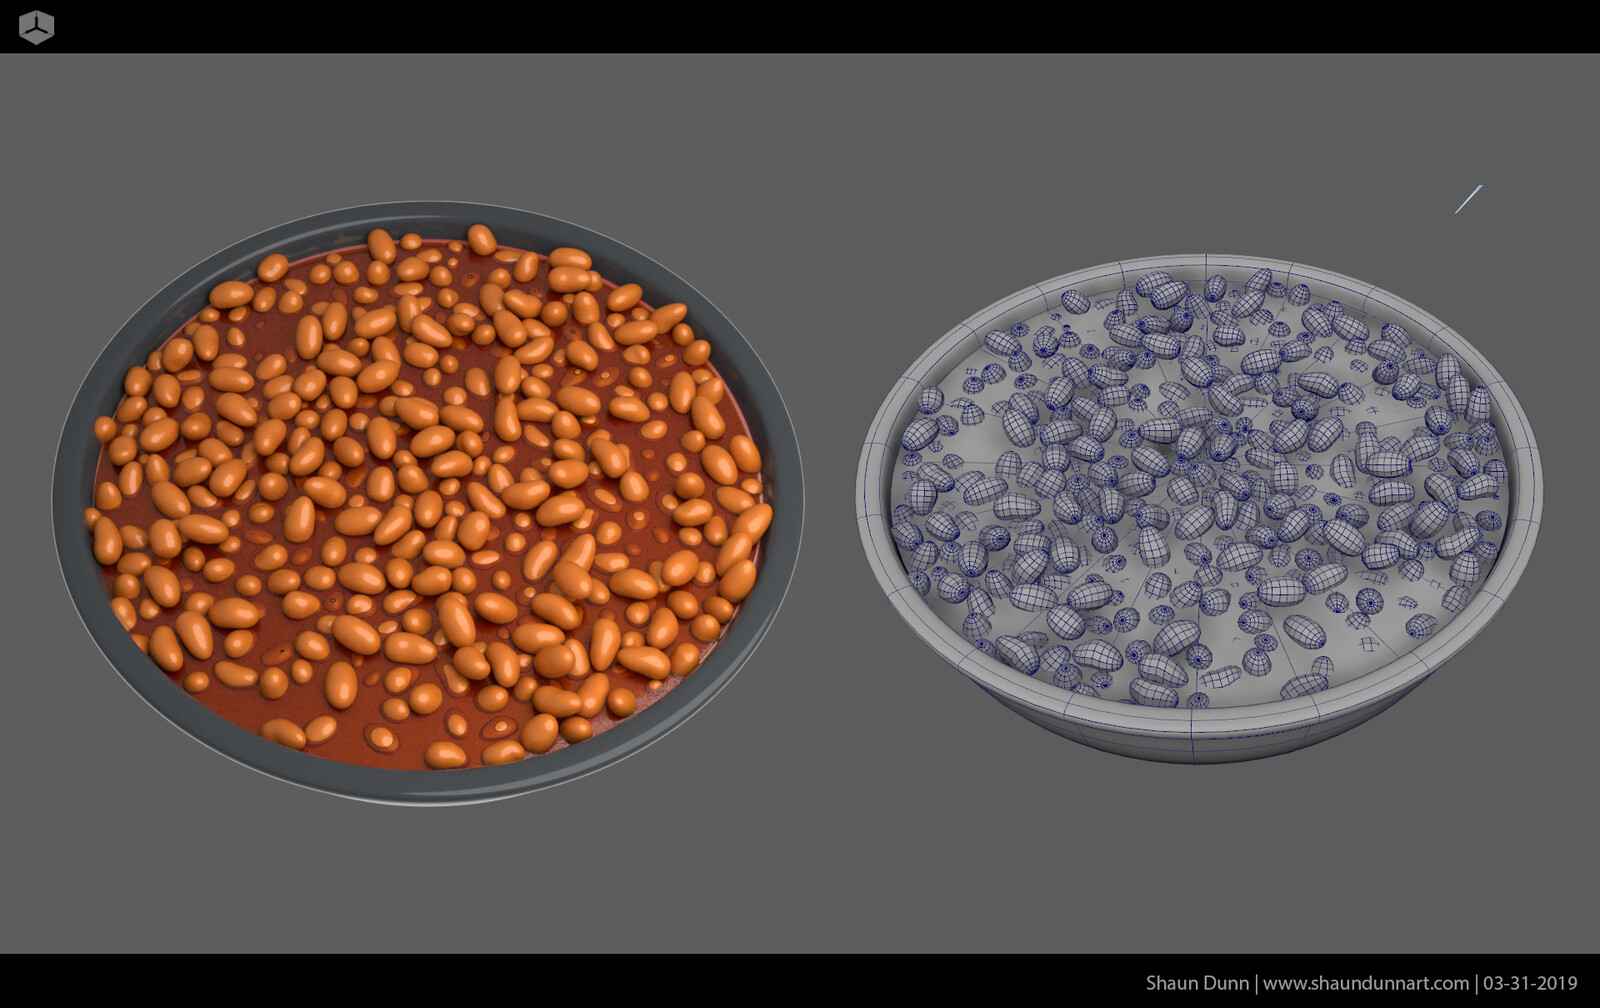 I used Bullet in Maya to achieve the simulated and natural look of all the beans laying on each other.